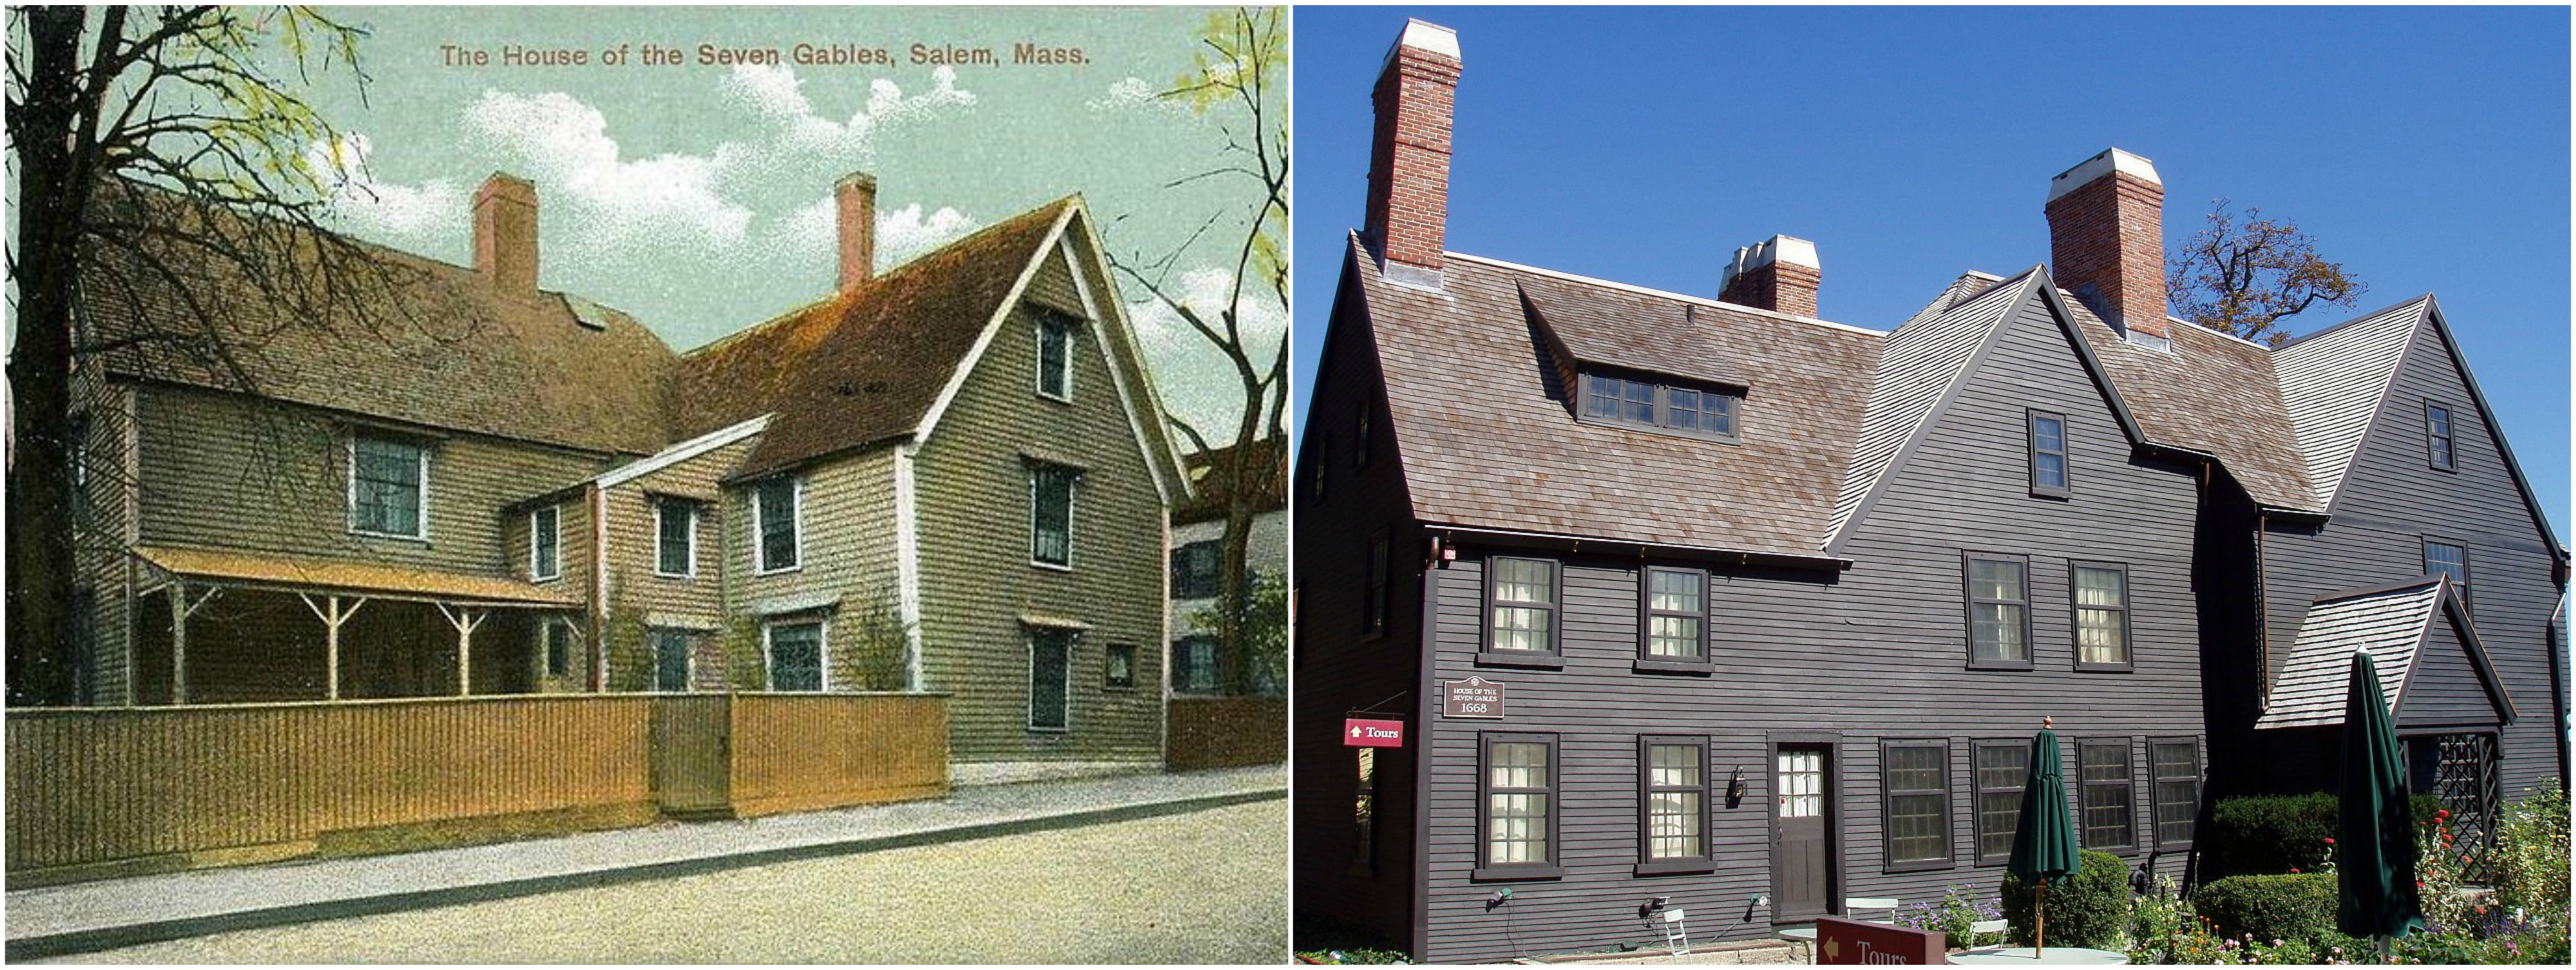 House of the Seven Gables, c. 1905, photo courtesy of WikiCommons, juxtaposed against the restored building today